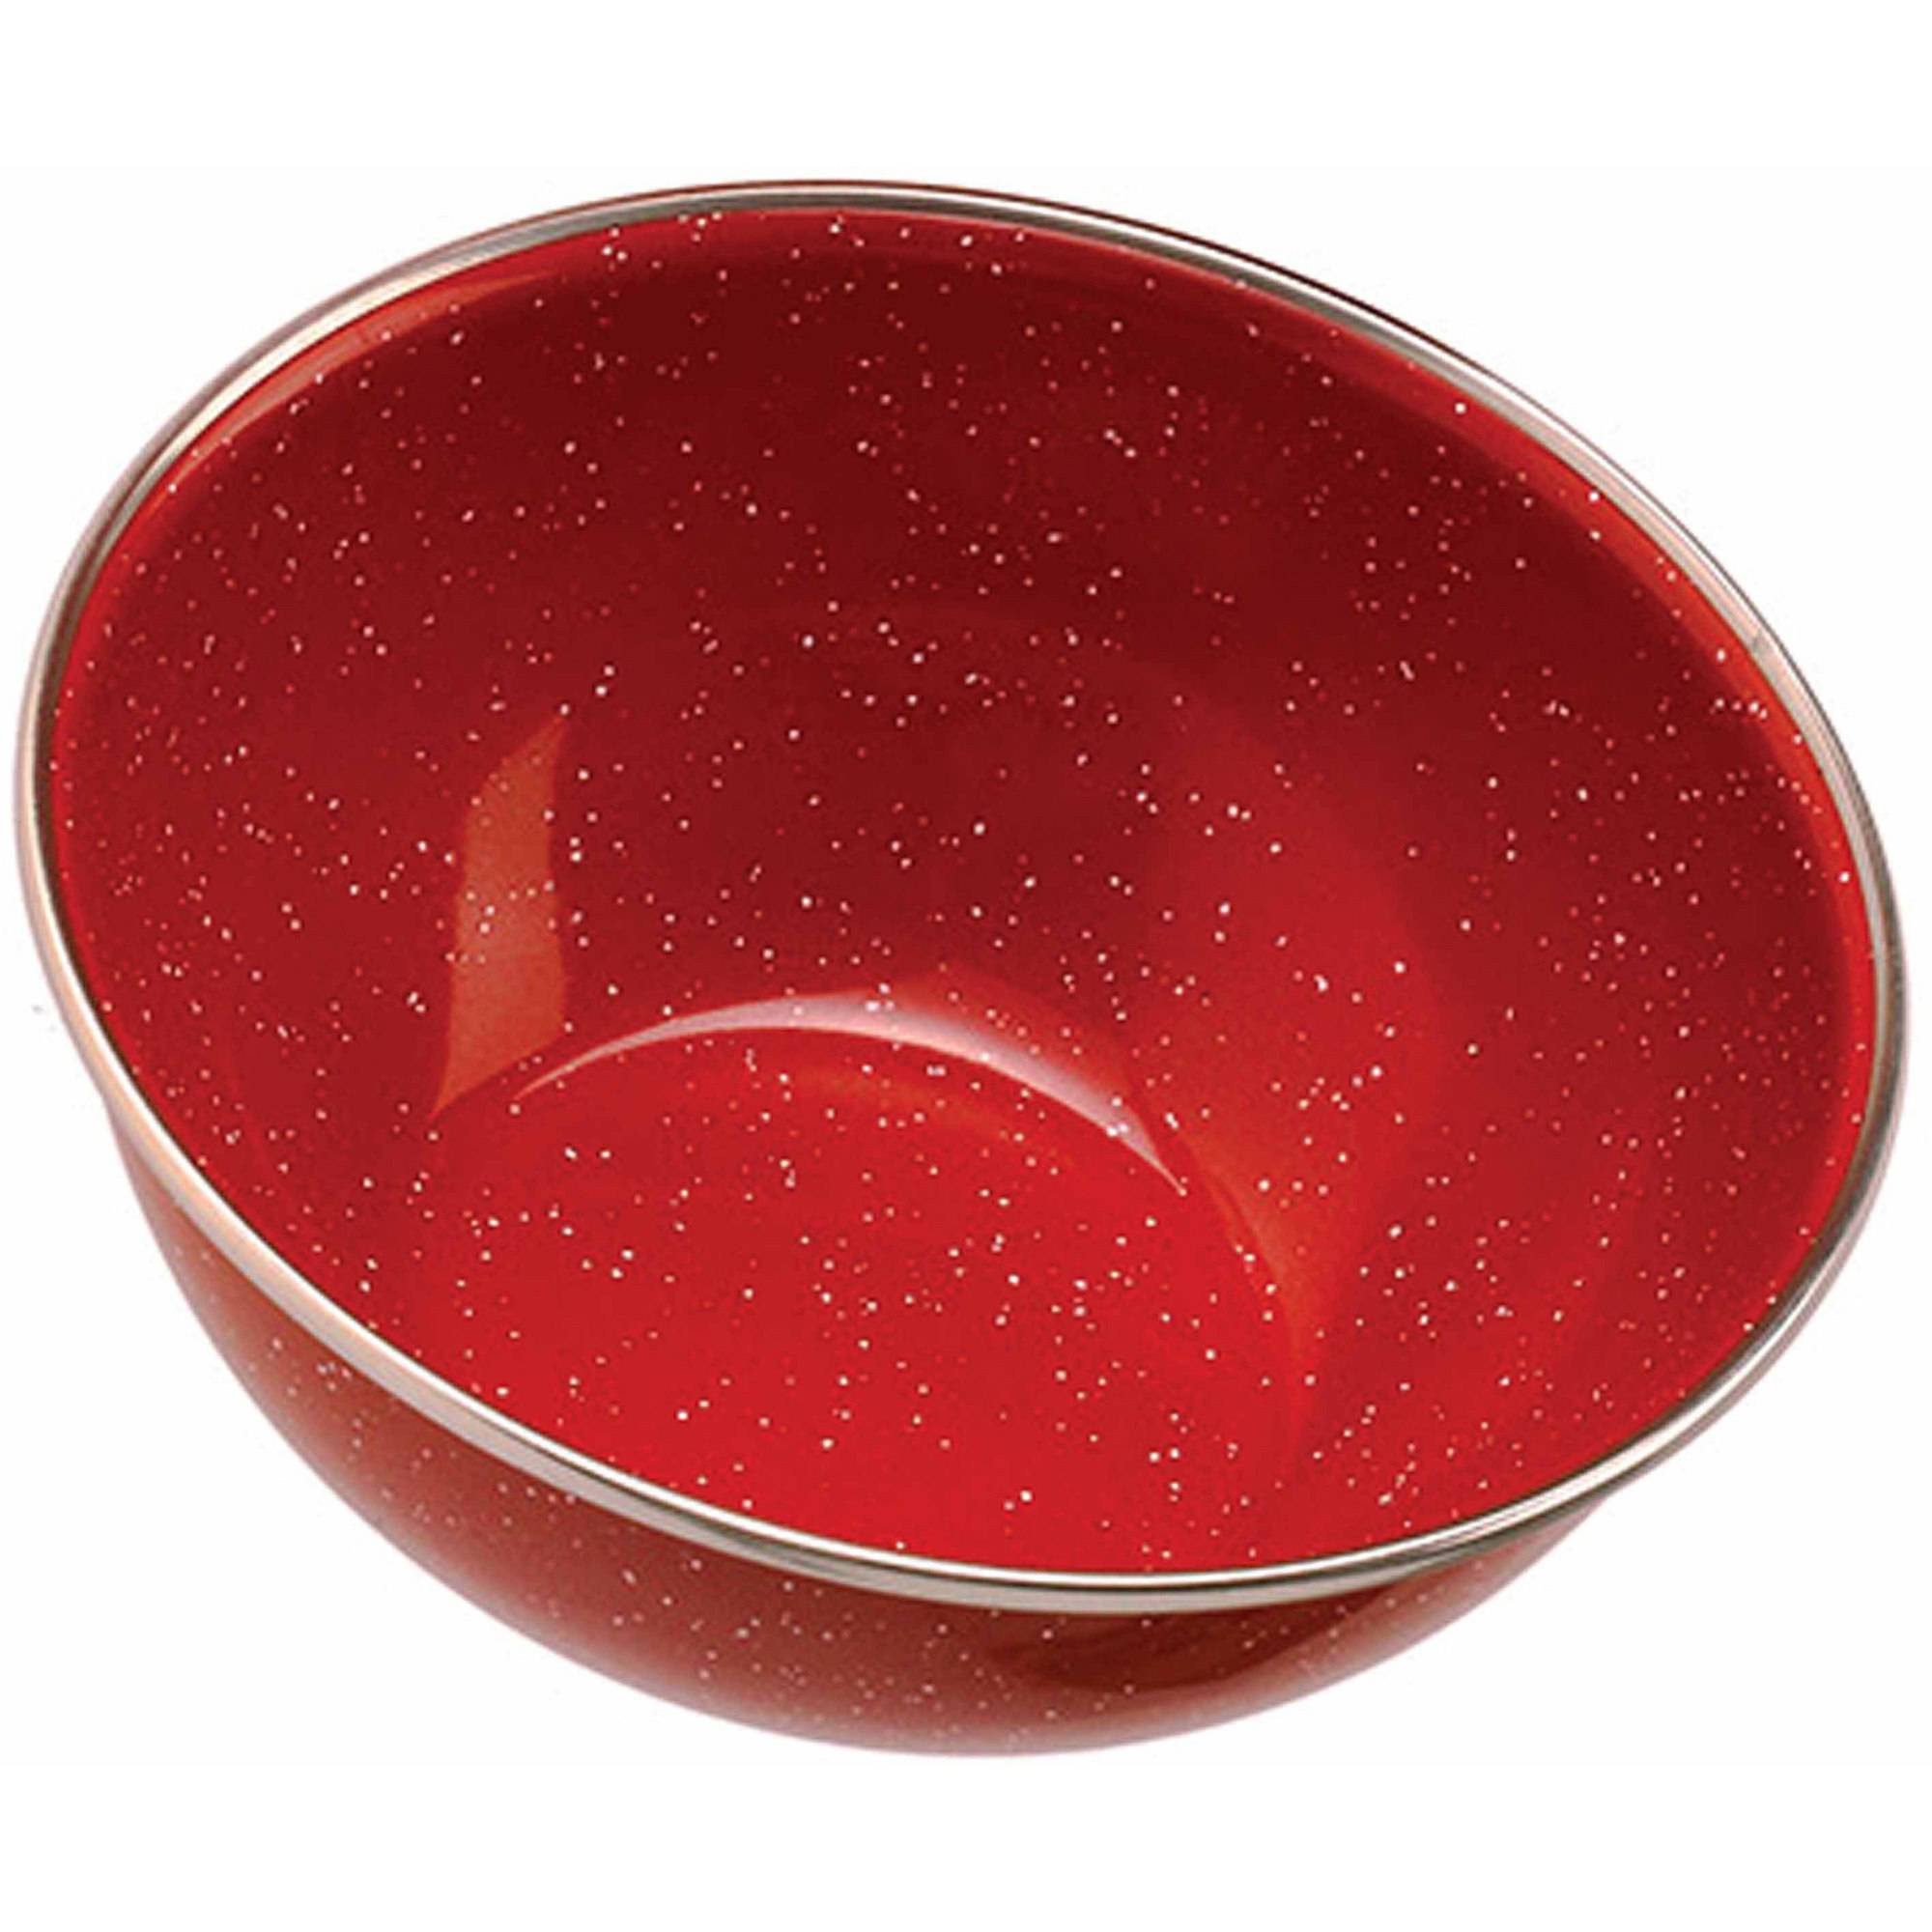 GSI Outdoors Stainless Steel Rim Enamelware Bowl, Red